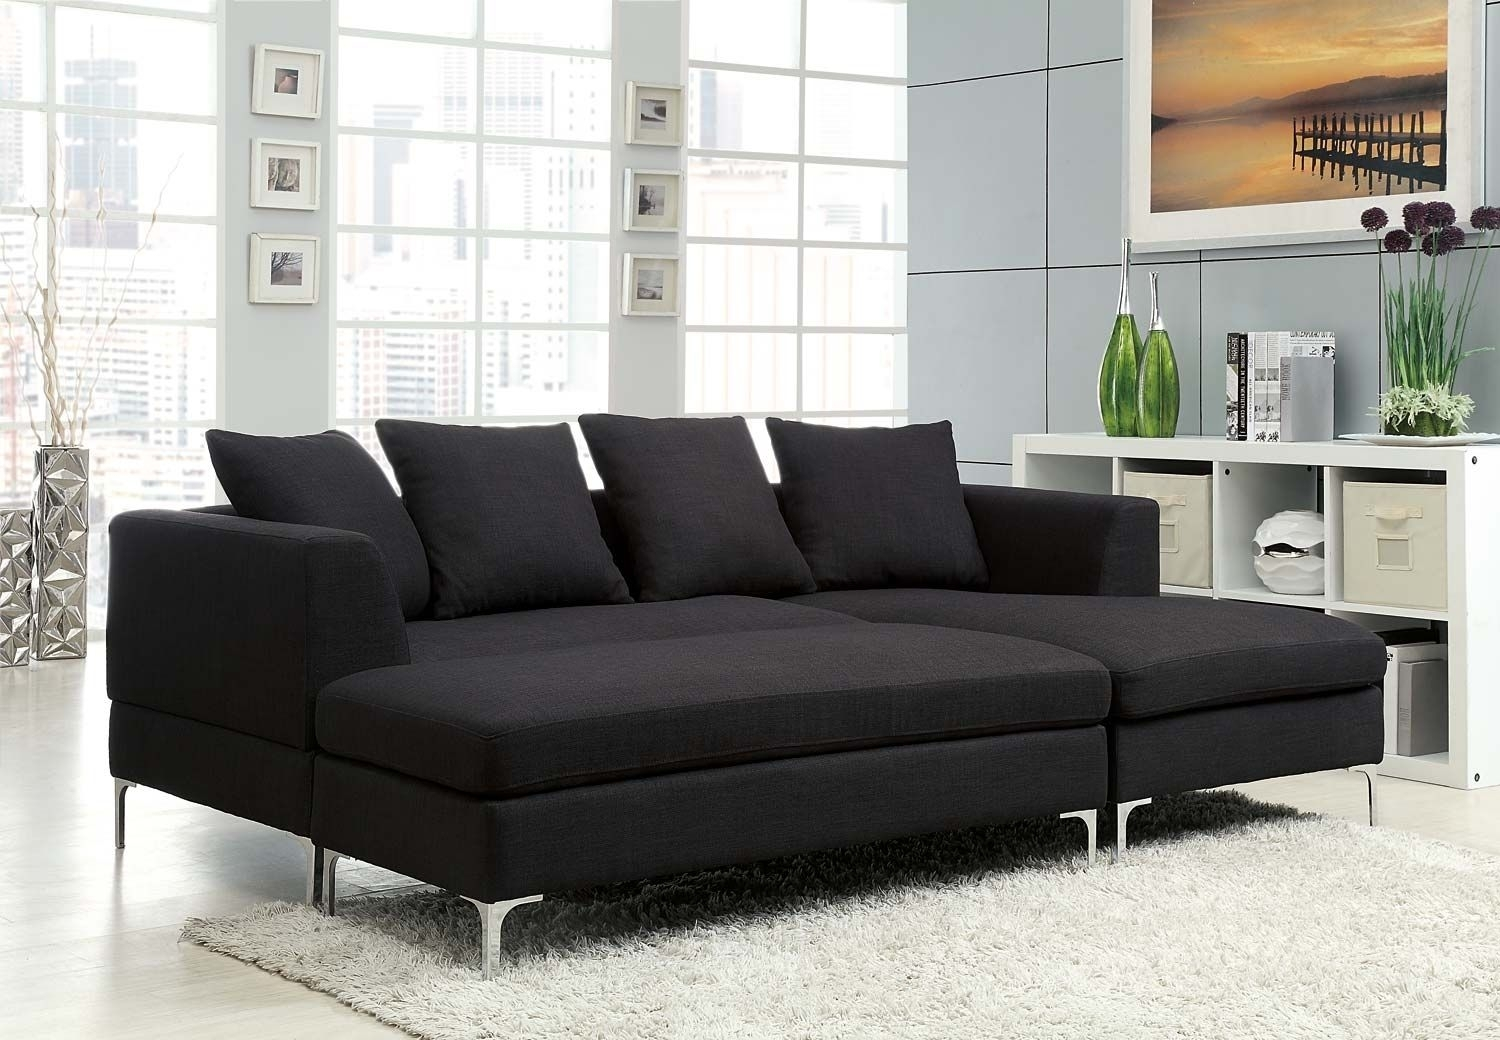 Sears Burton Sectional Sofa | Acrylics | Pinterest Inside Burton Leather 3 Piece Sectionals (Image 15 of 25)